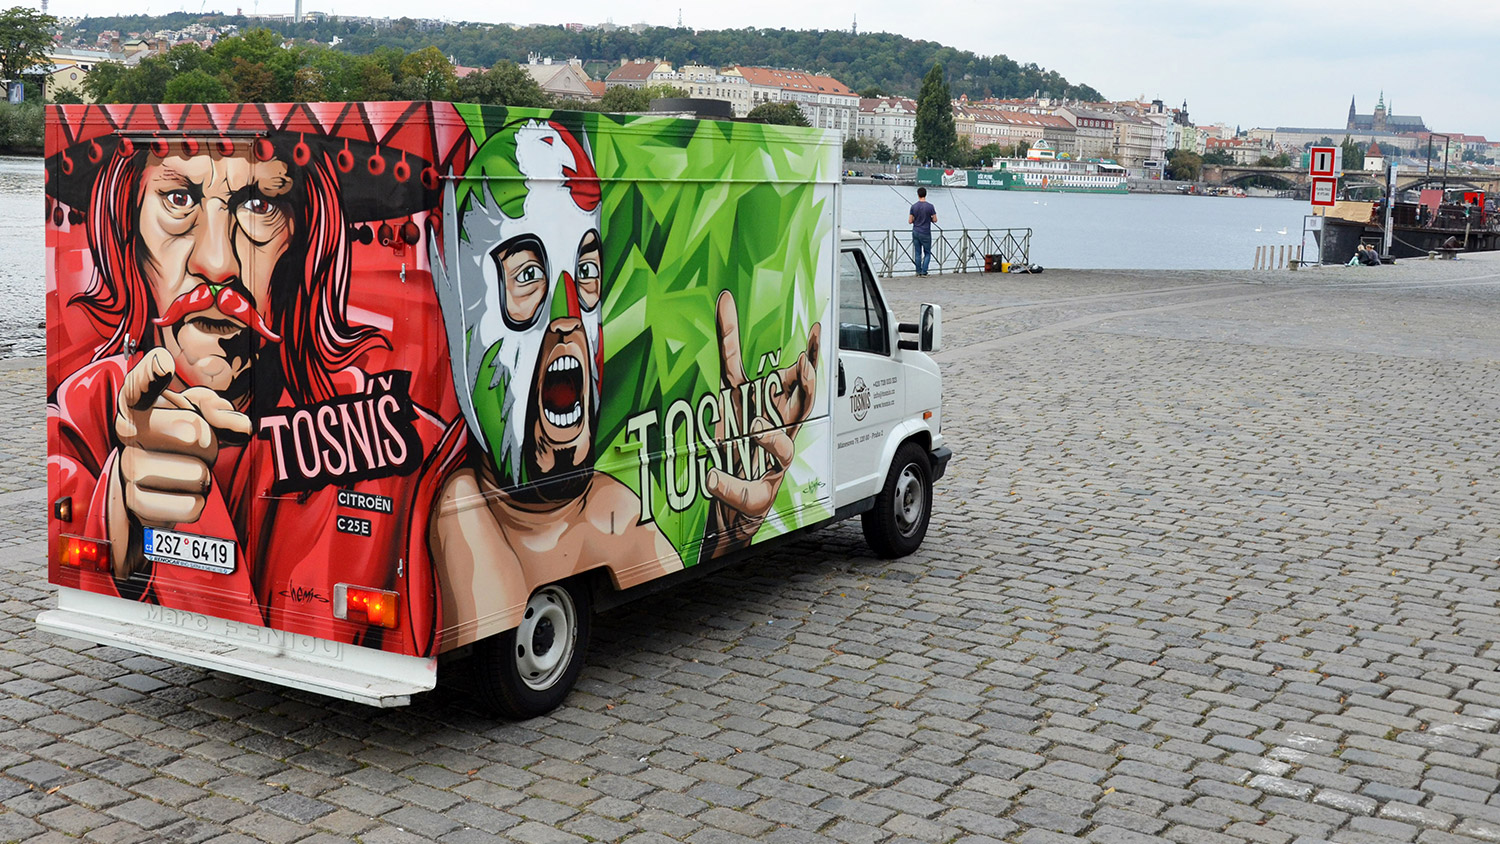 foodtruck-tosnis, graffiti, chemis